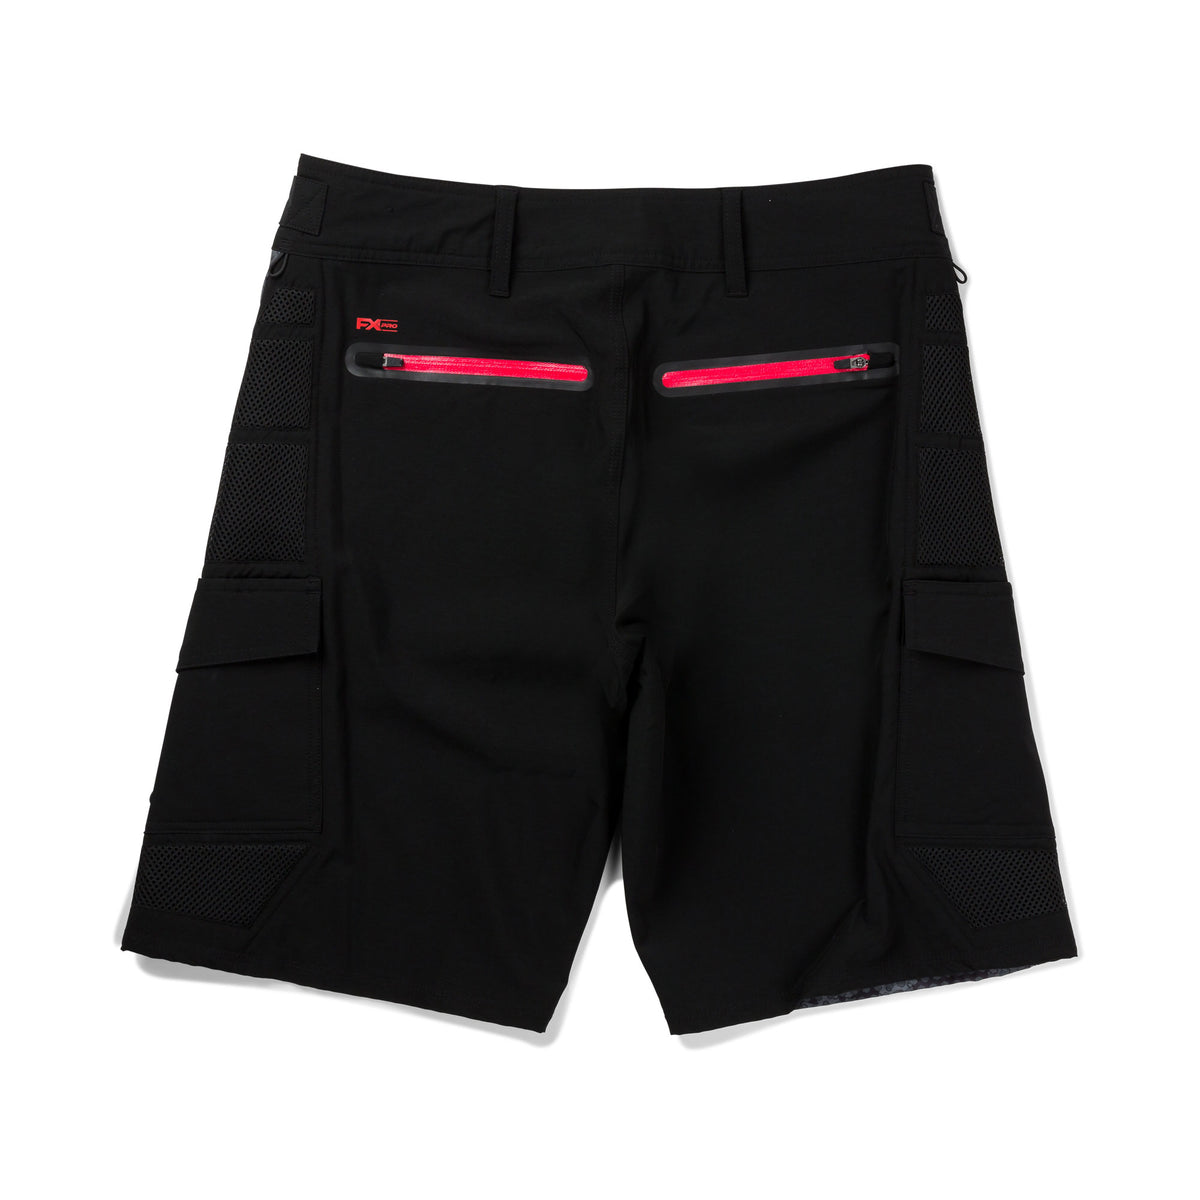 FX-PRO Tactical Fishing Shorts Big Image - 3